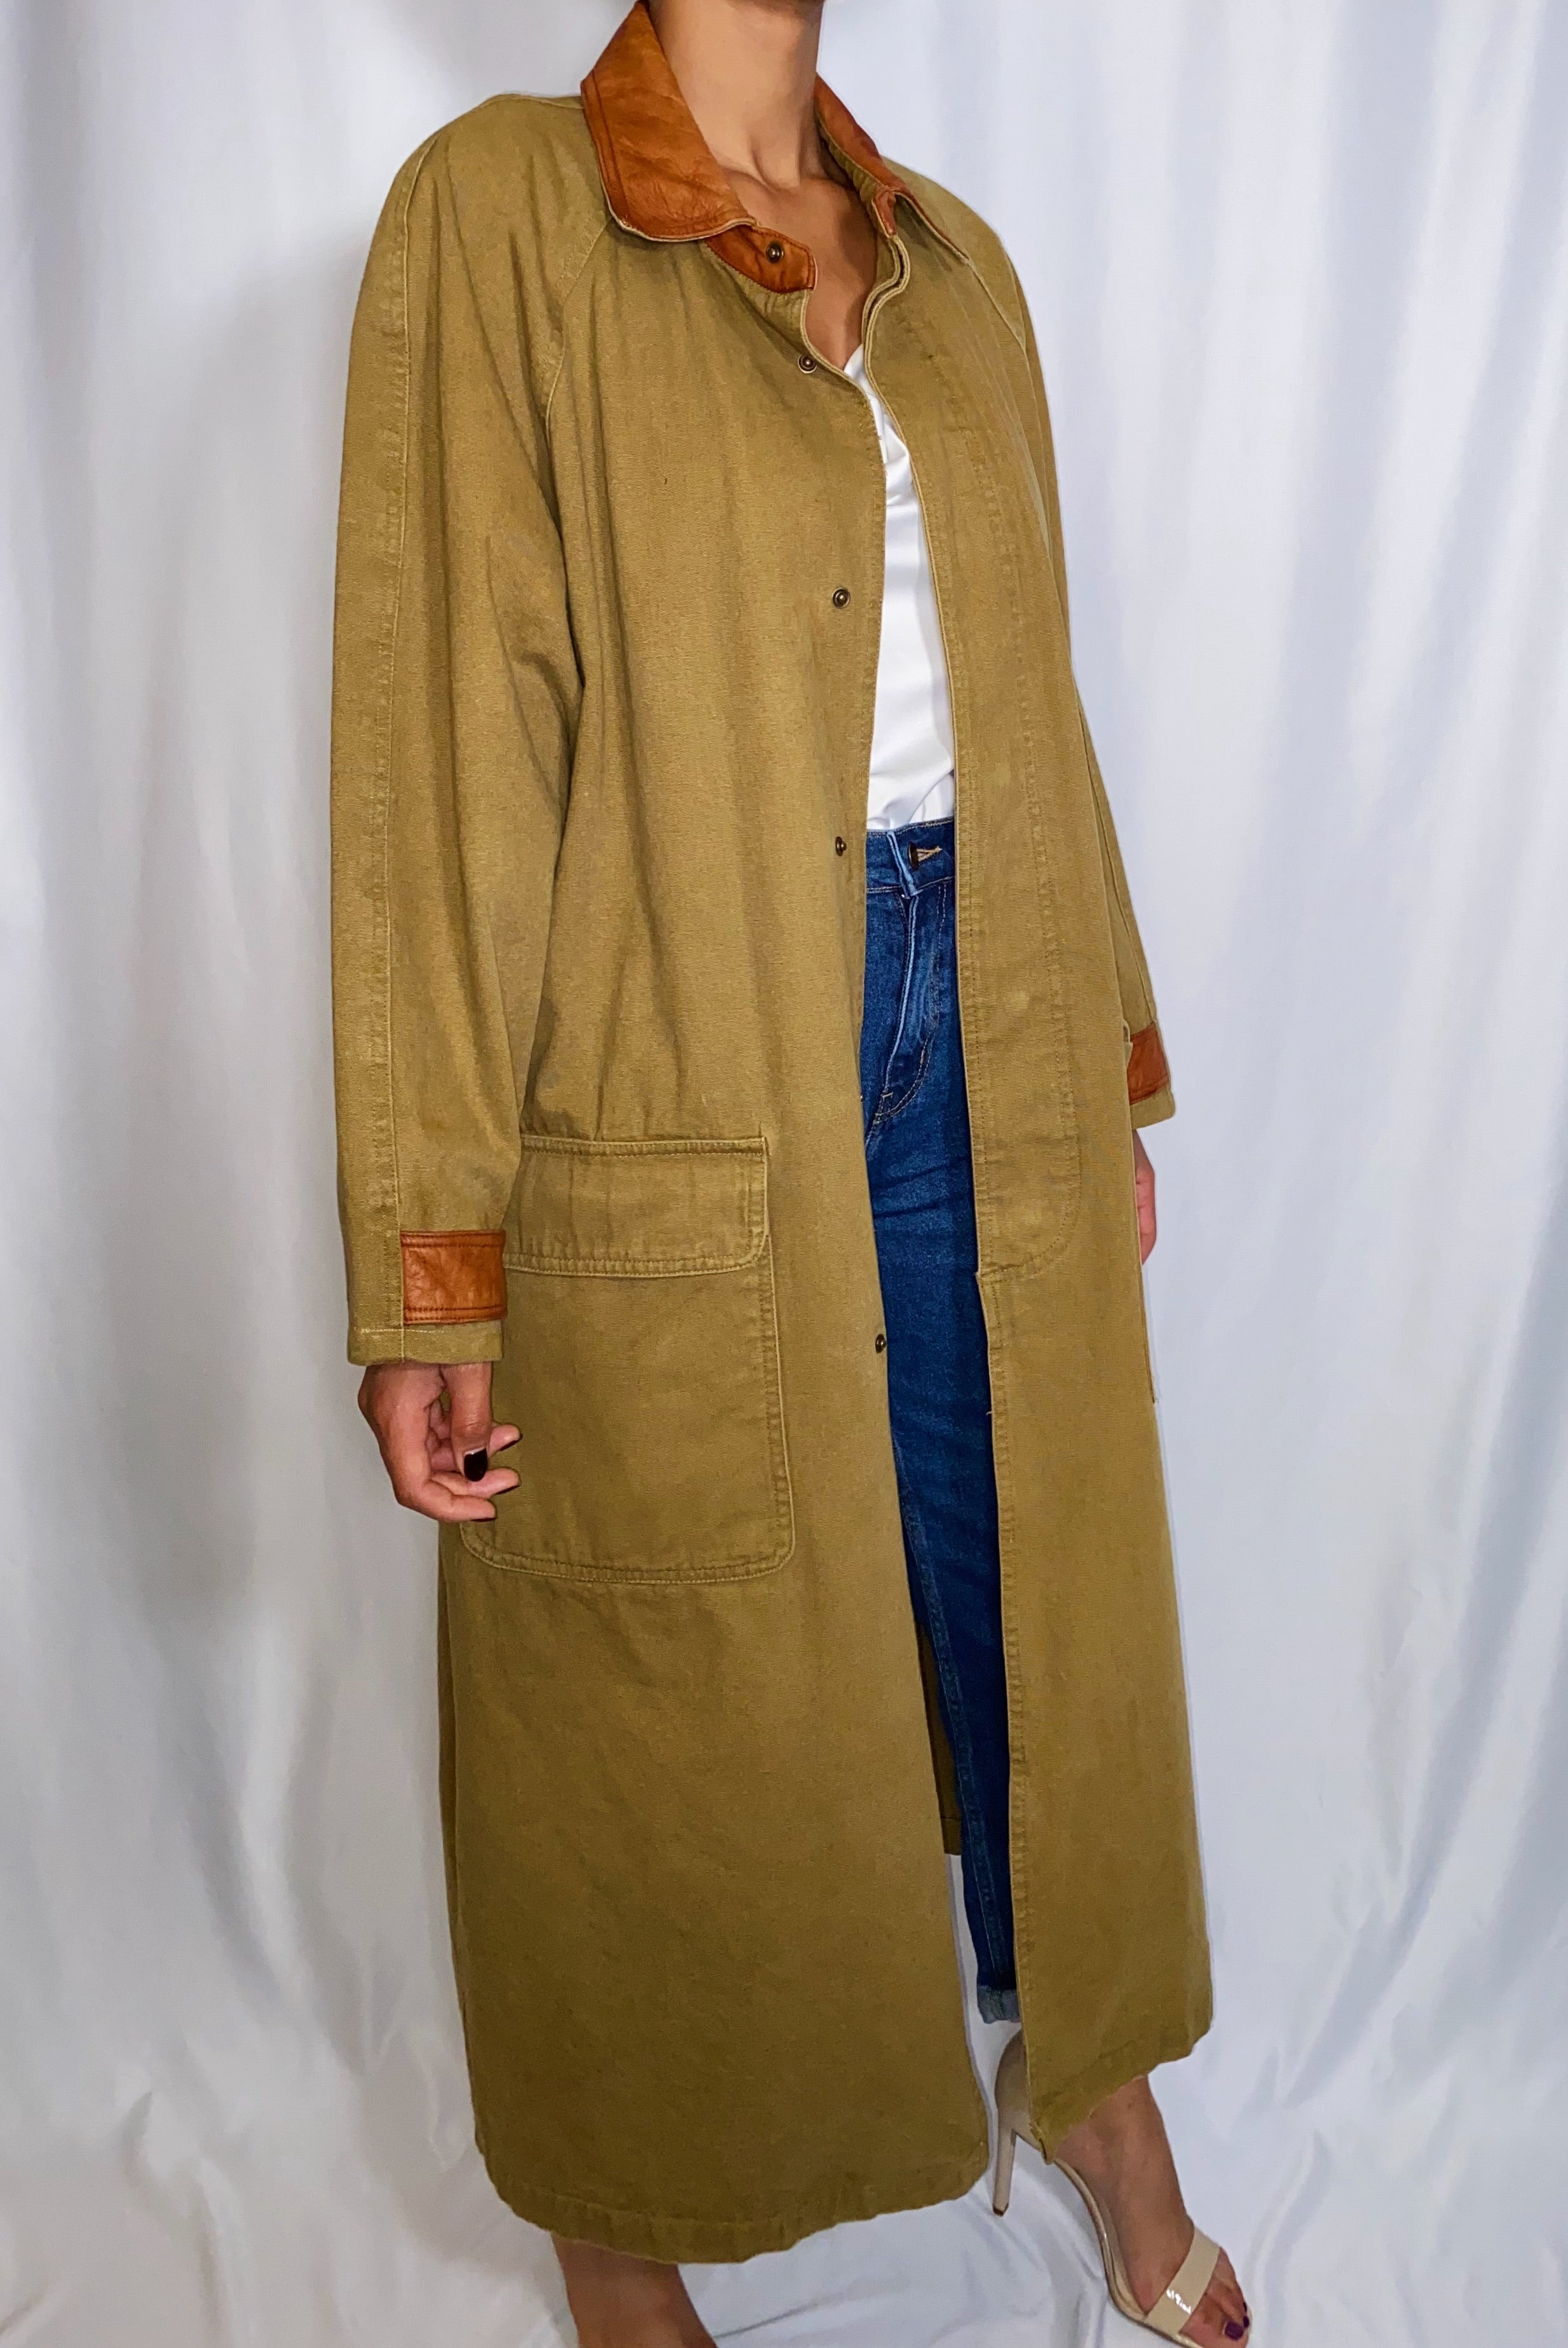 Vintage Georgetown Trench Coat with Leather Trim (size small)